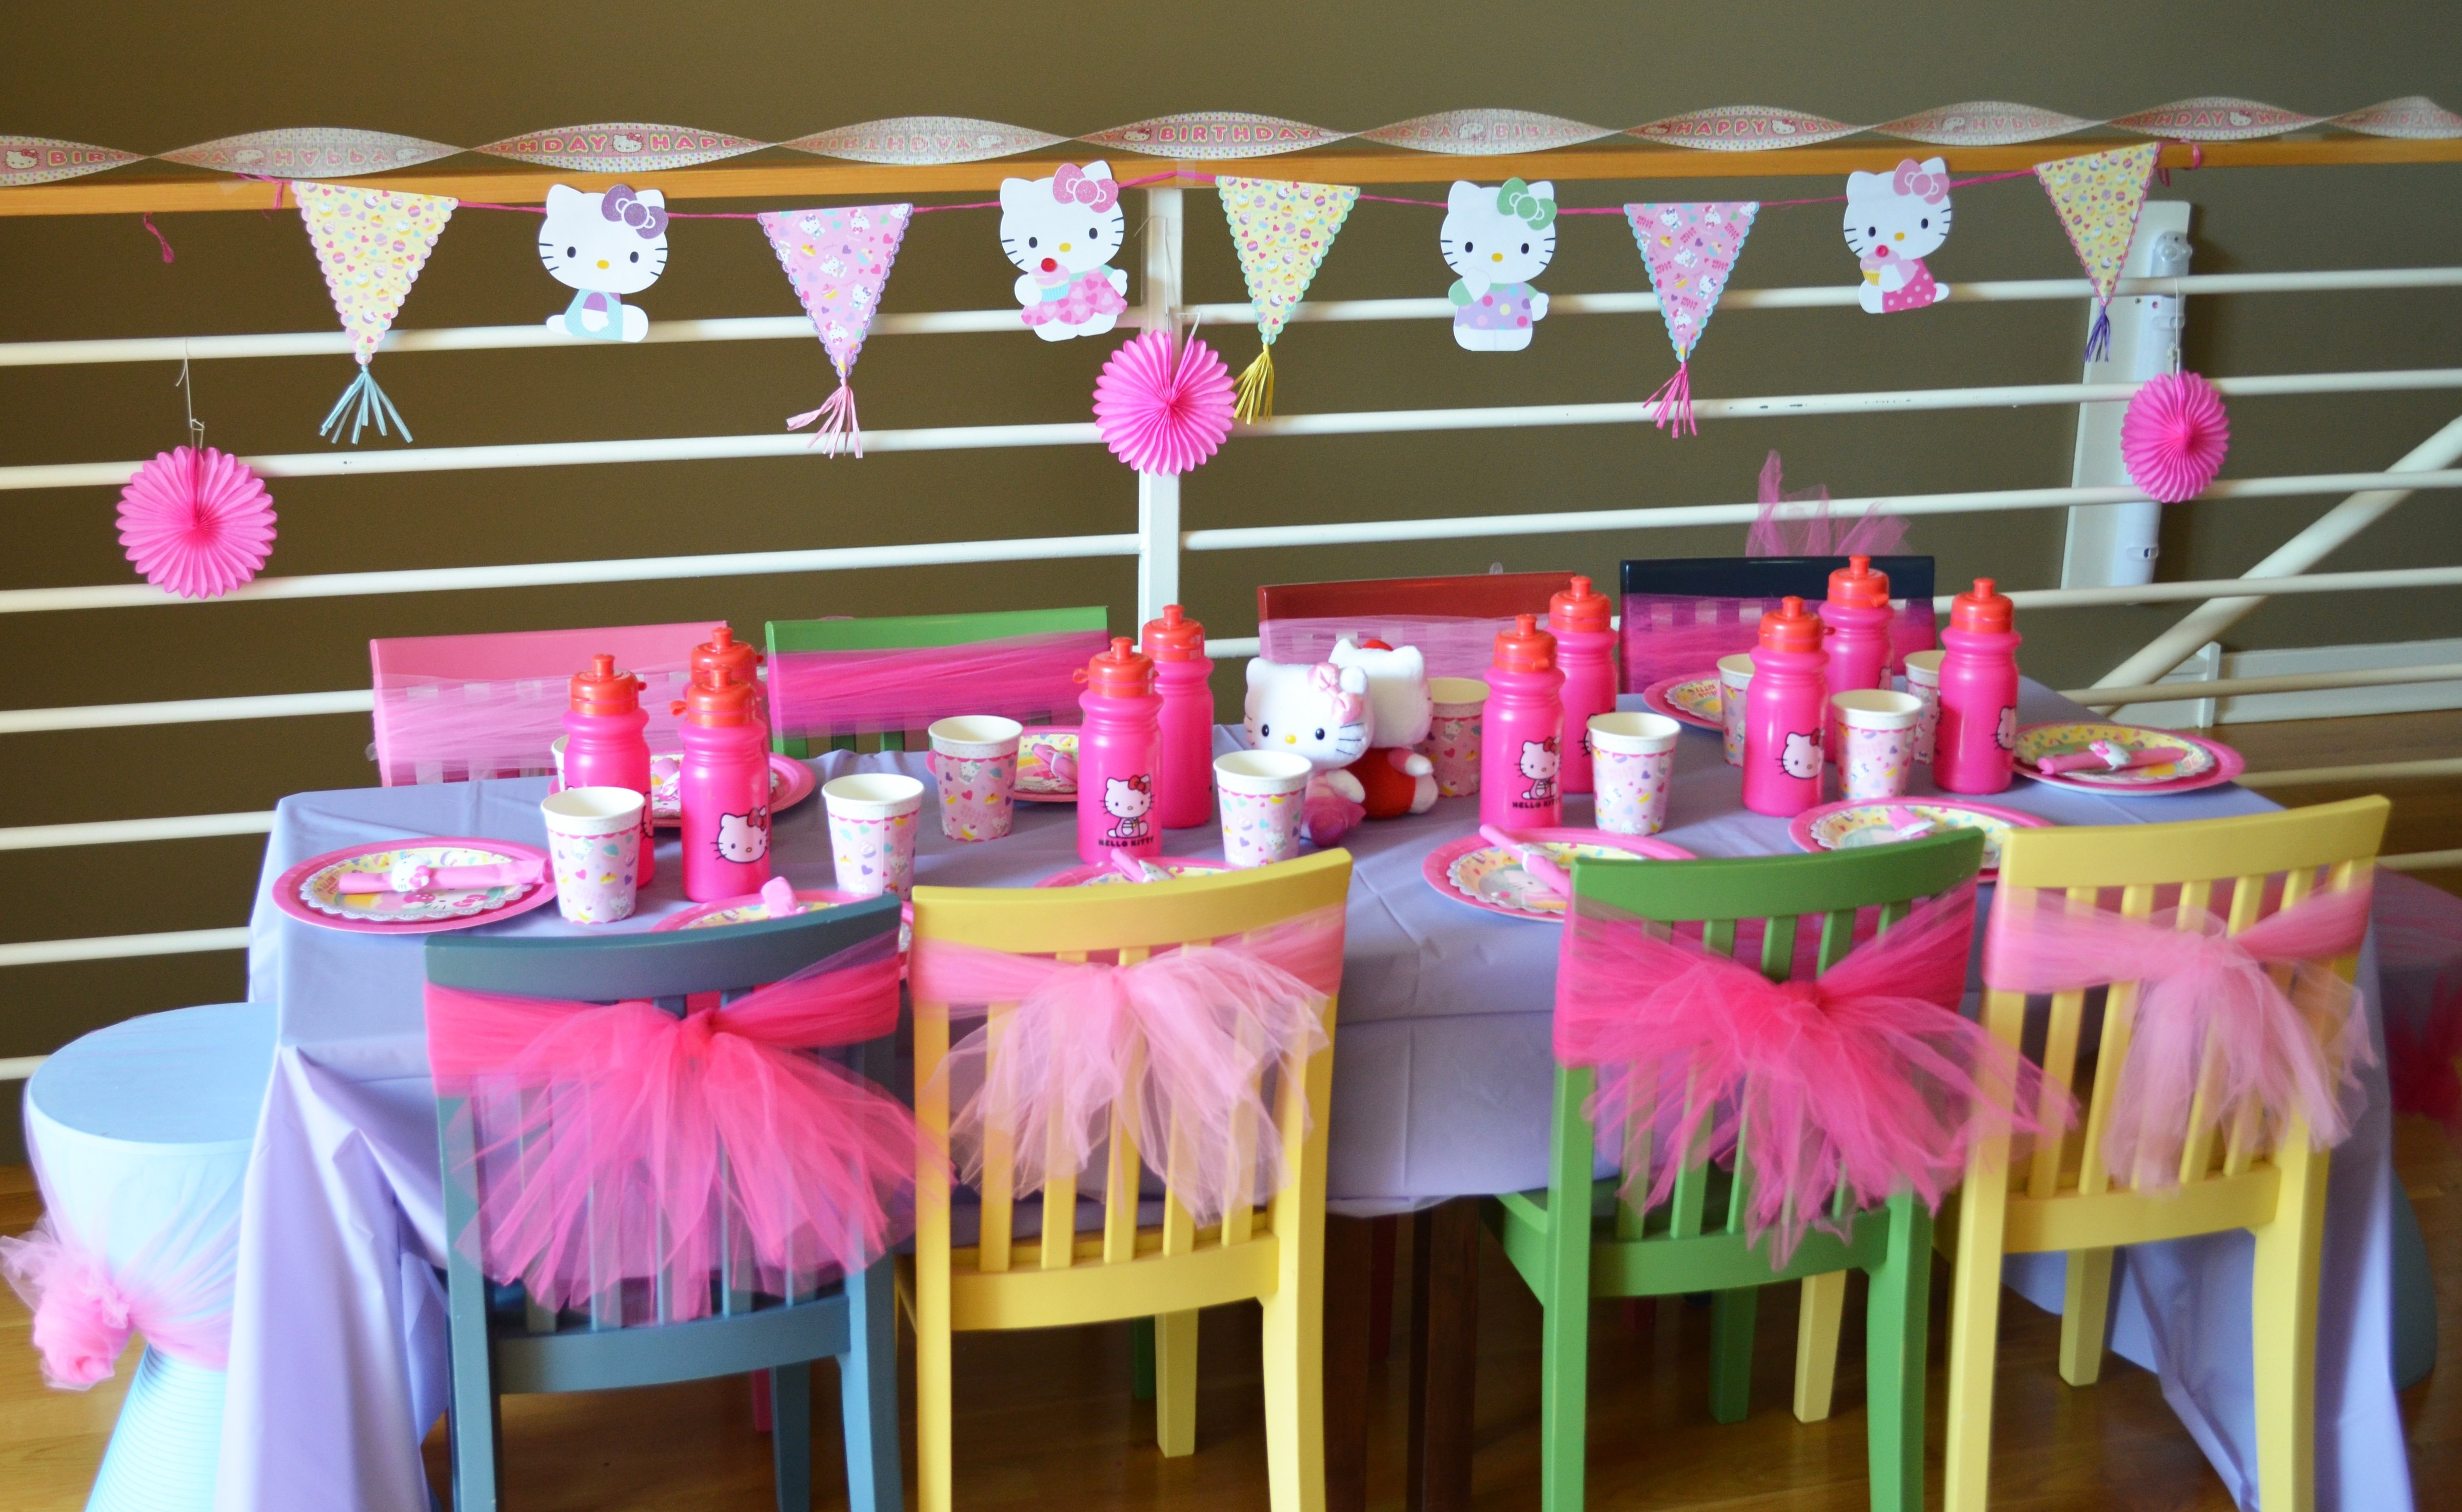 10 Spectacular Birthday Party Ideas For 10 Year Old Girl a how to hello kitty birthday party hello kitty birthday kitty 2 2020